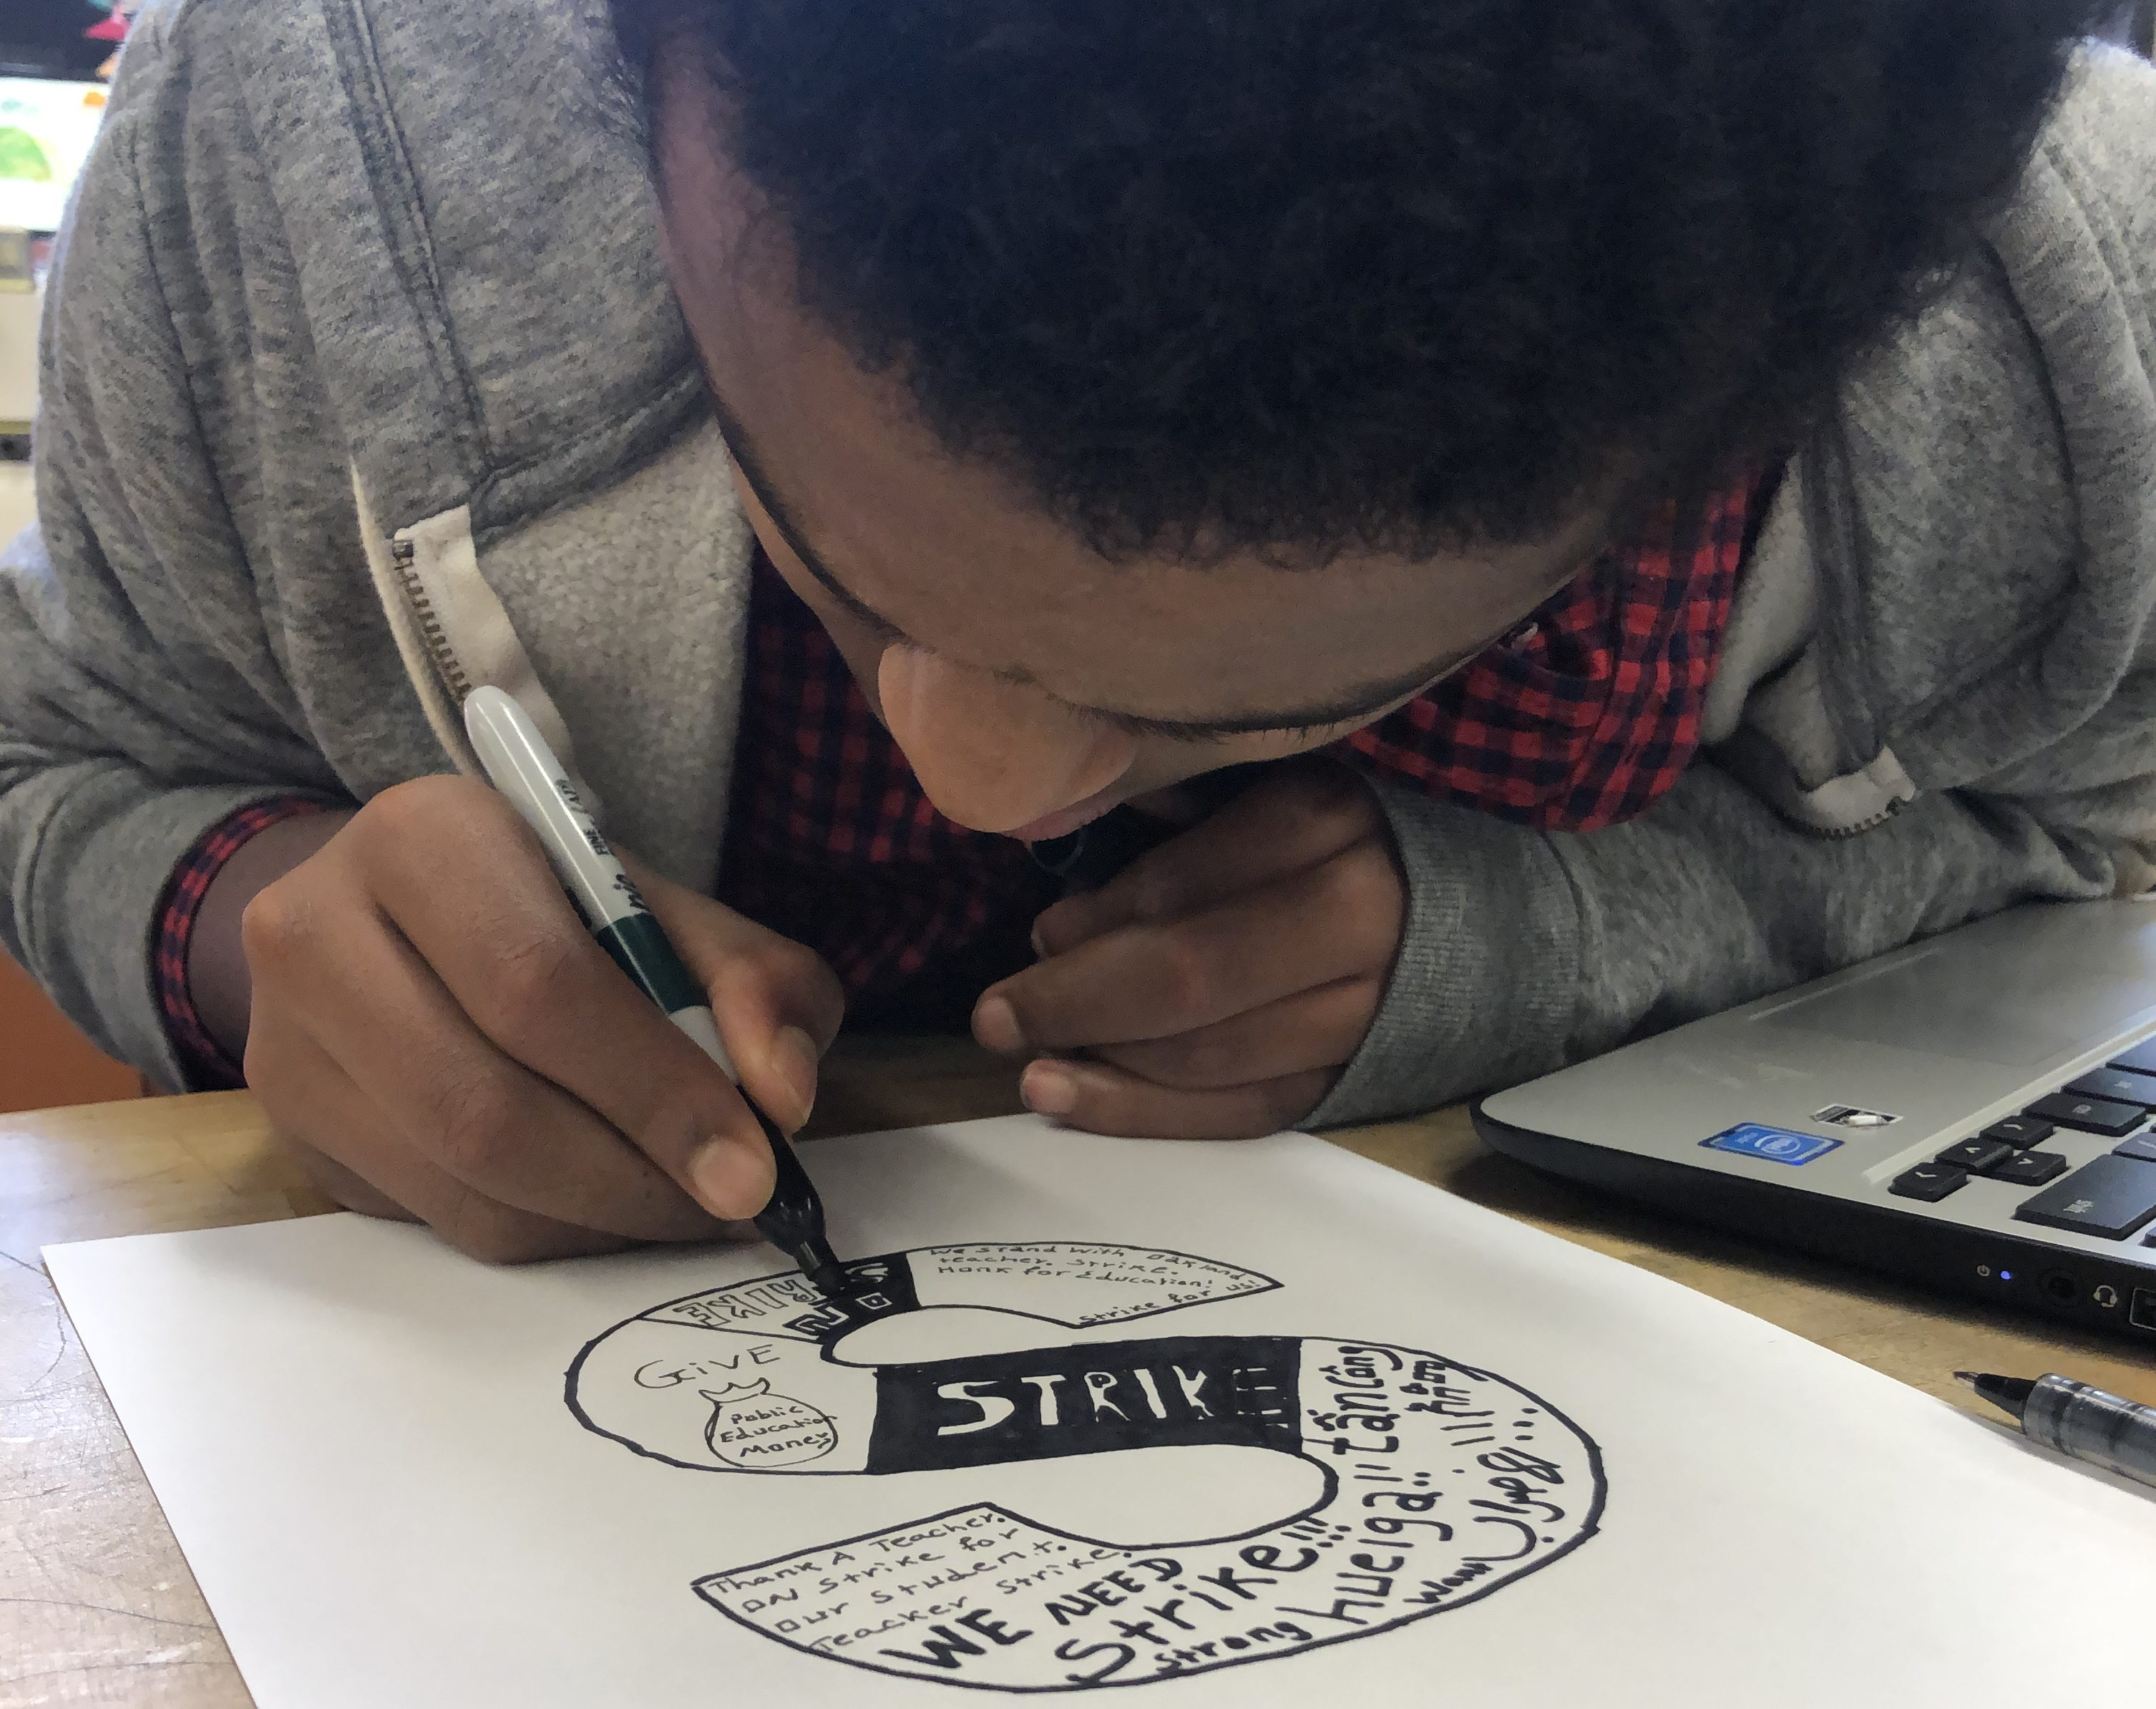 A student at Oakland International High School works on a strike-related art project, part of a lesson in the February 2019 run-up to a planned teachers strike in the Oakland Unified School District.